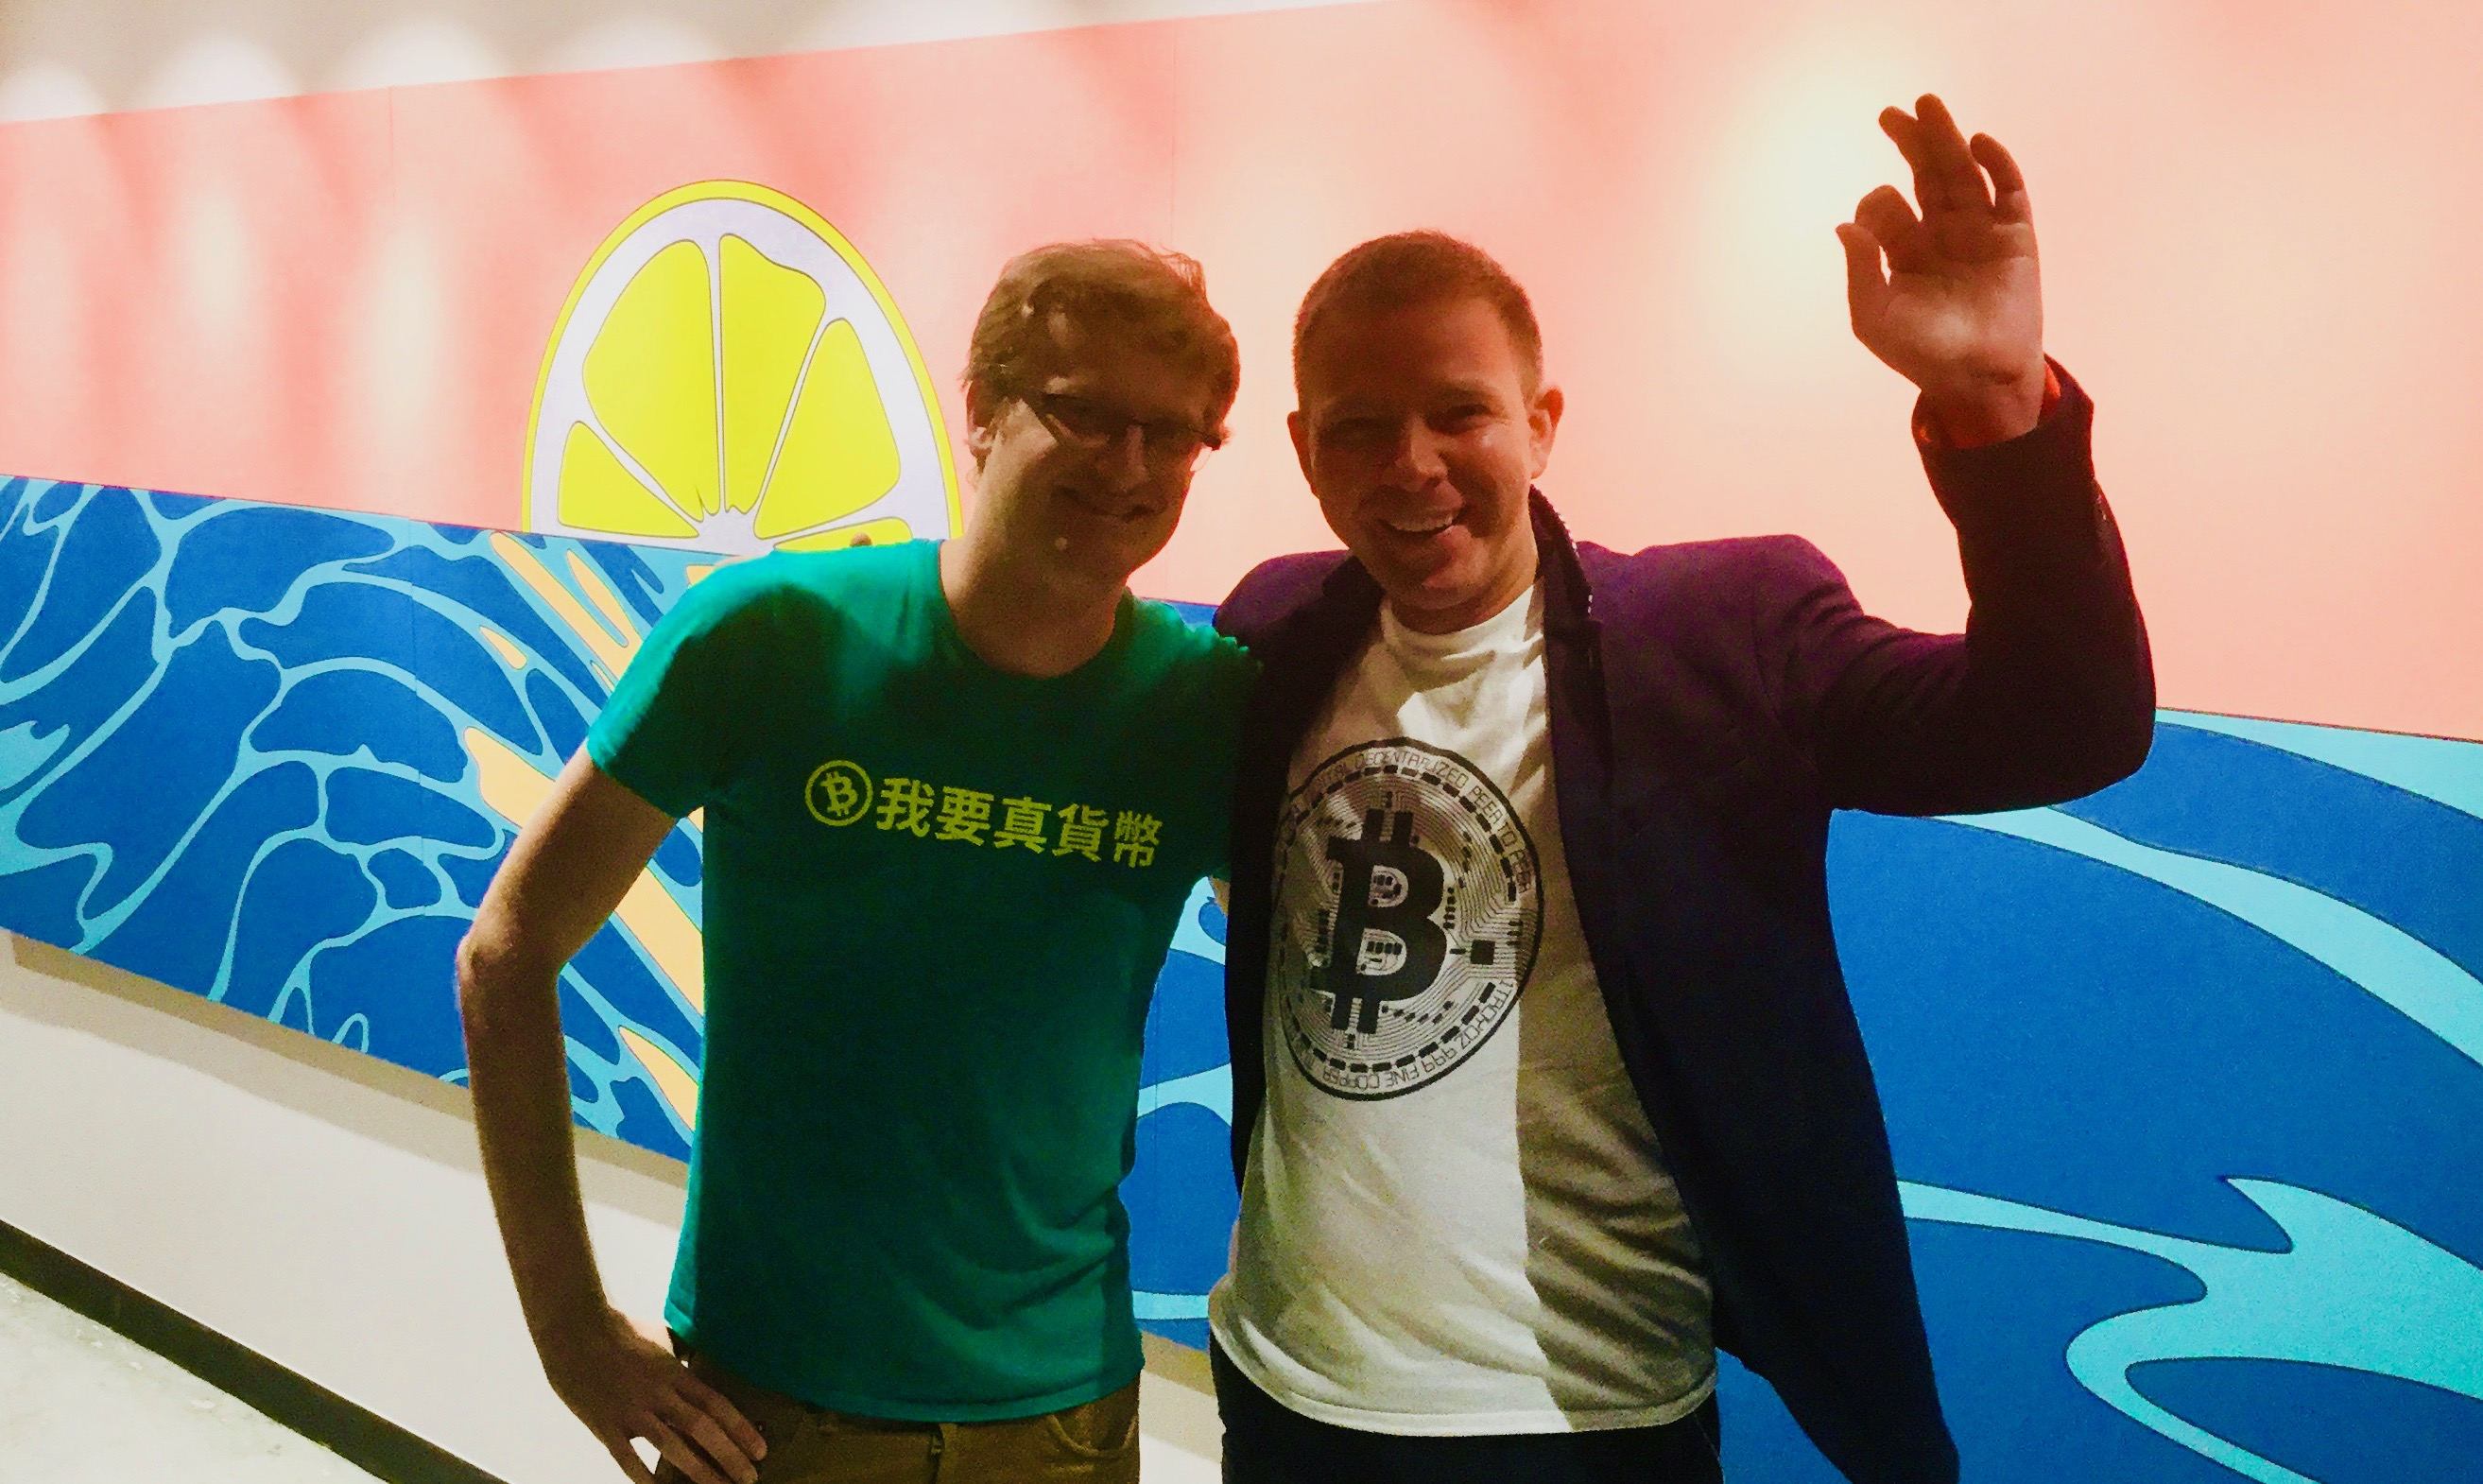 Dmitry Fedotov and Leonhard Weese #Bitcoin #Crypto #Hong Kong